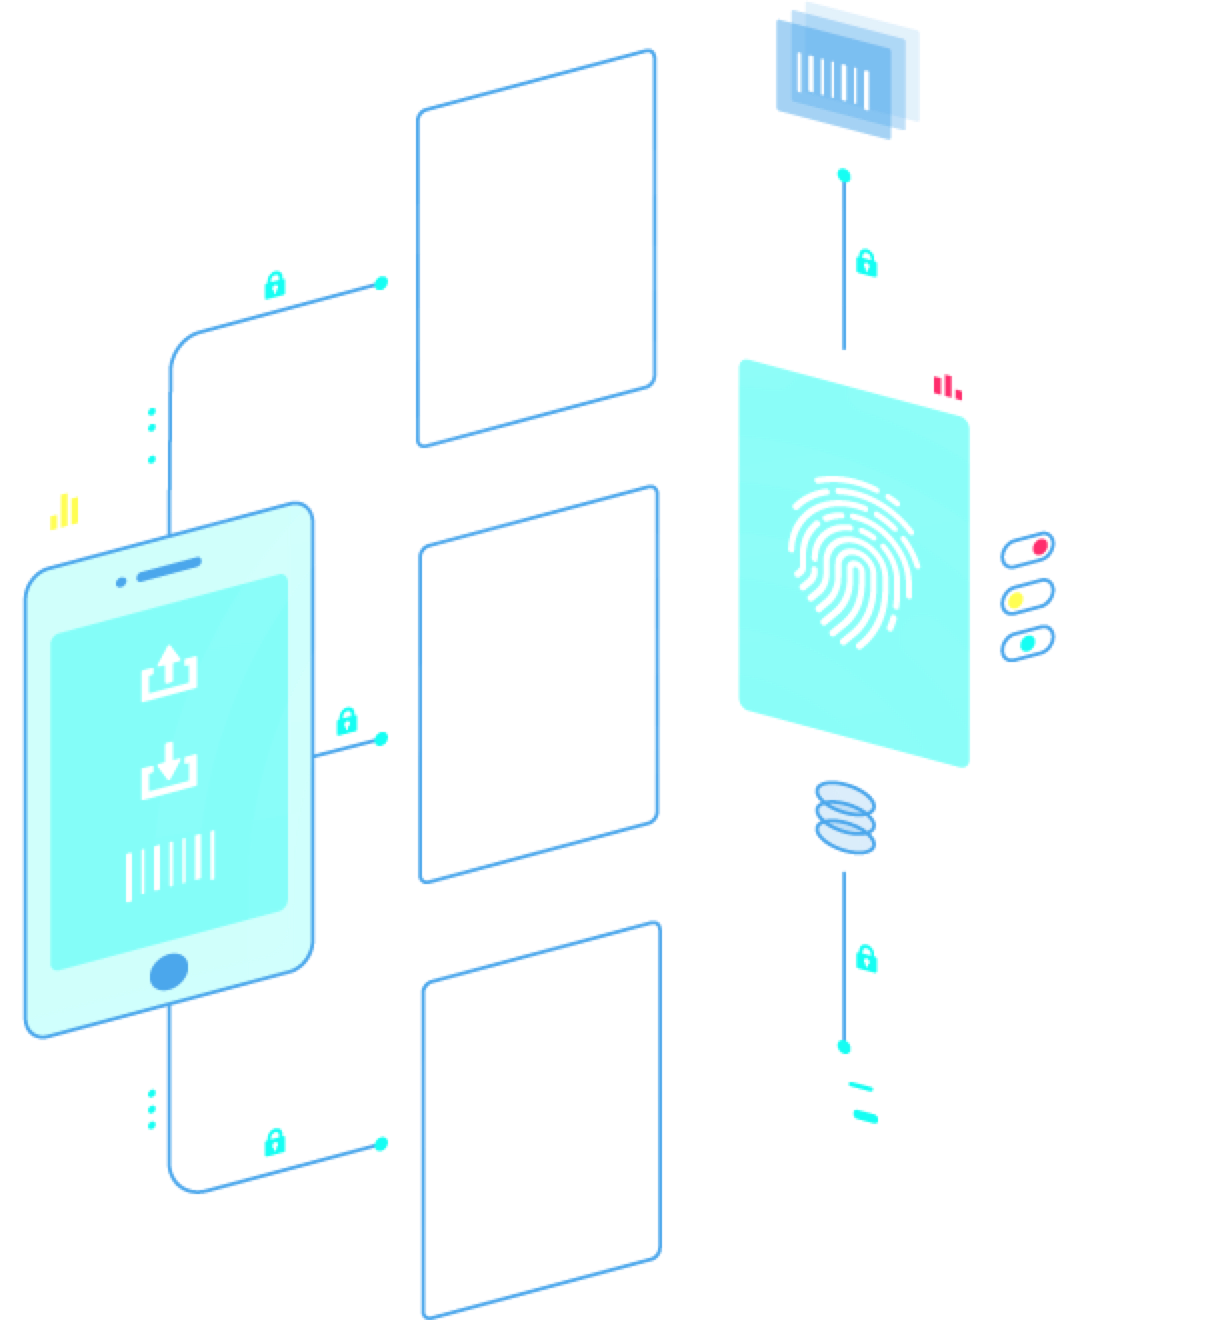 Finger print usage graphics